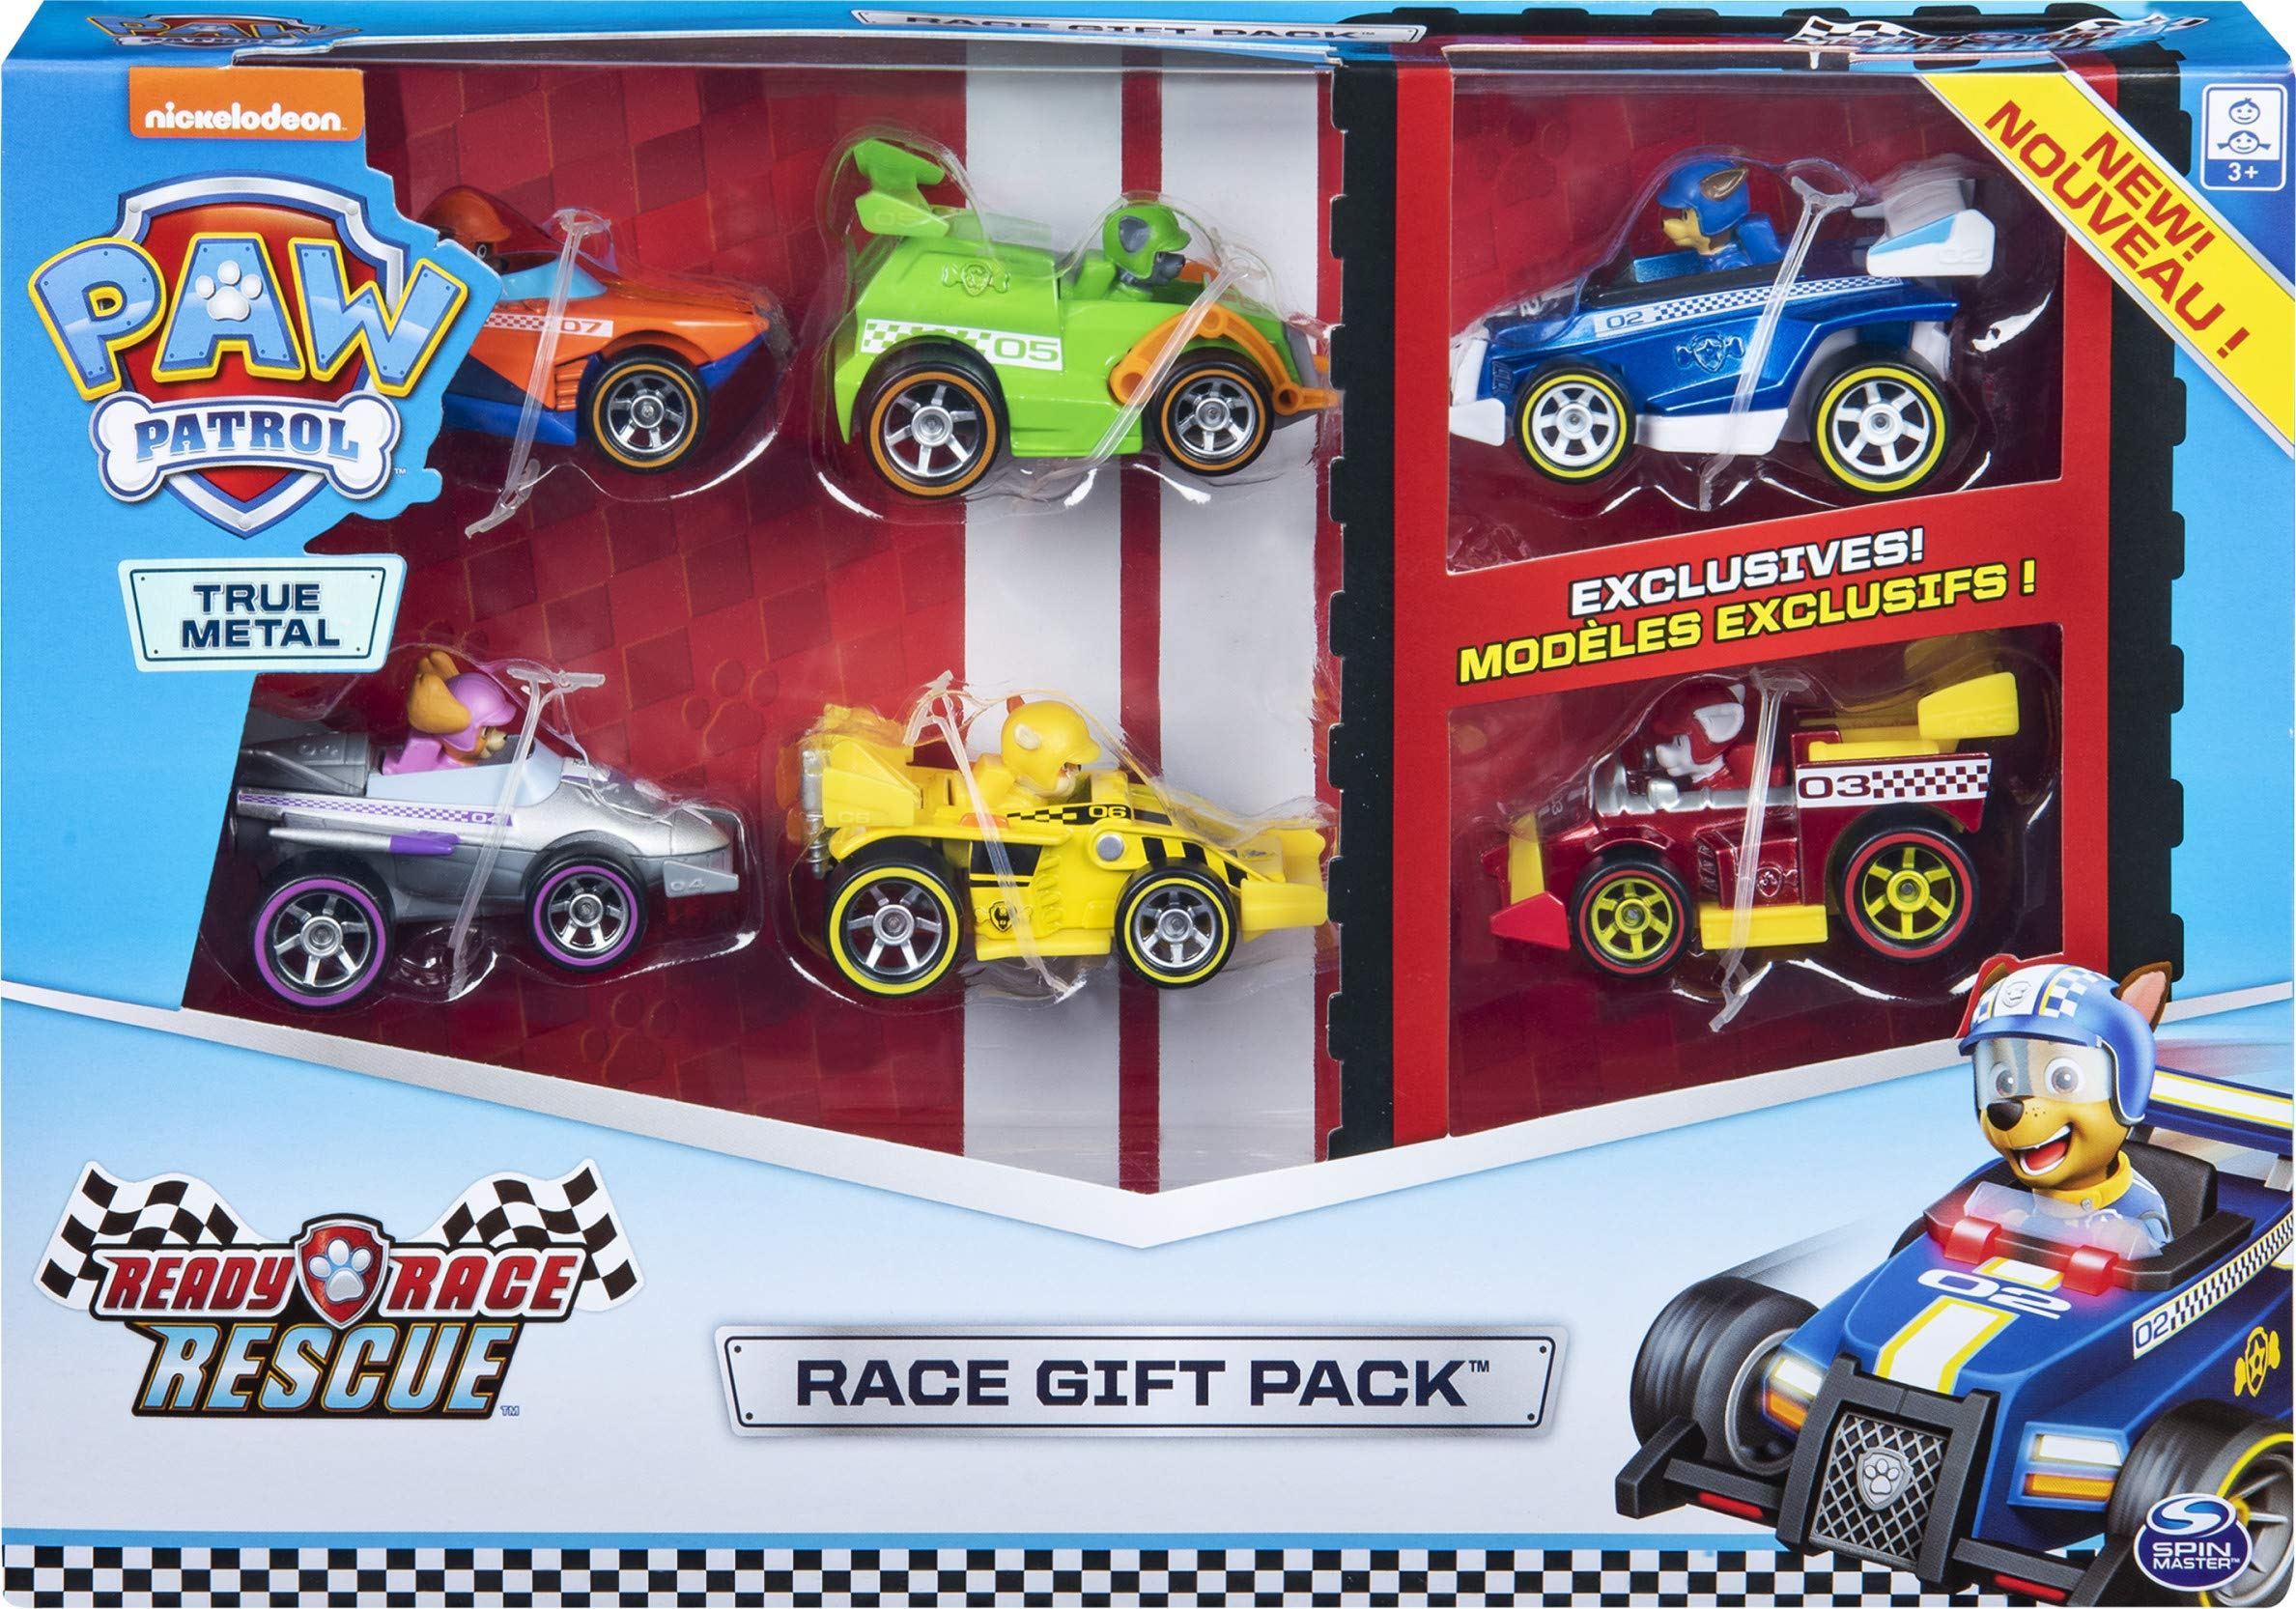 PAW Patrol True Metal Ready Race Rescue Gift Pack of 6 Race Car Collectible Die-Cast Vehicles, 1:55 Scale